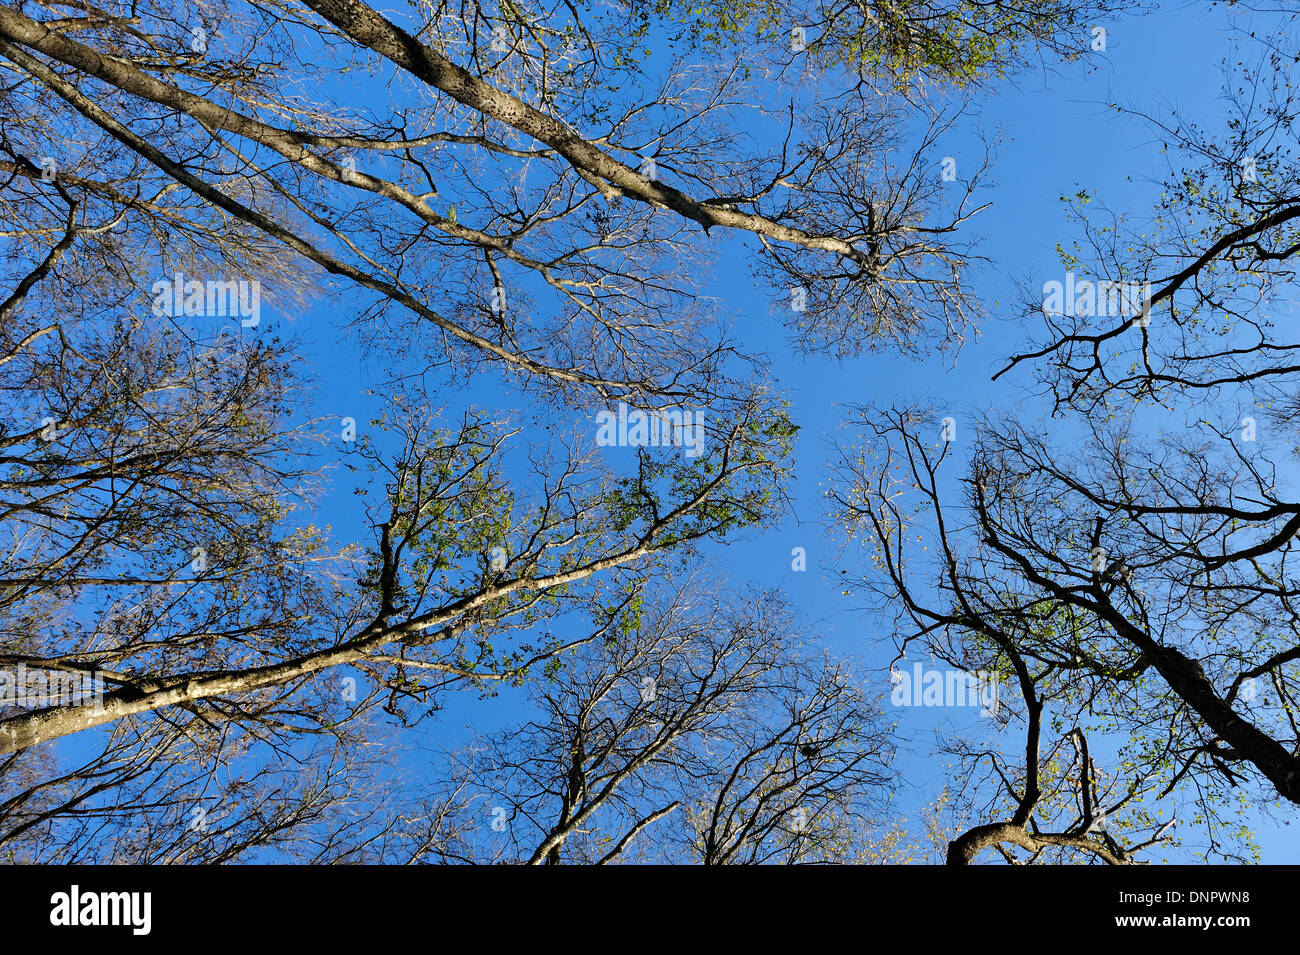 High trees in the forest of Towne park, Mc Kinney, Texas, USA Stock Photo